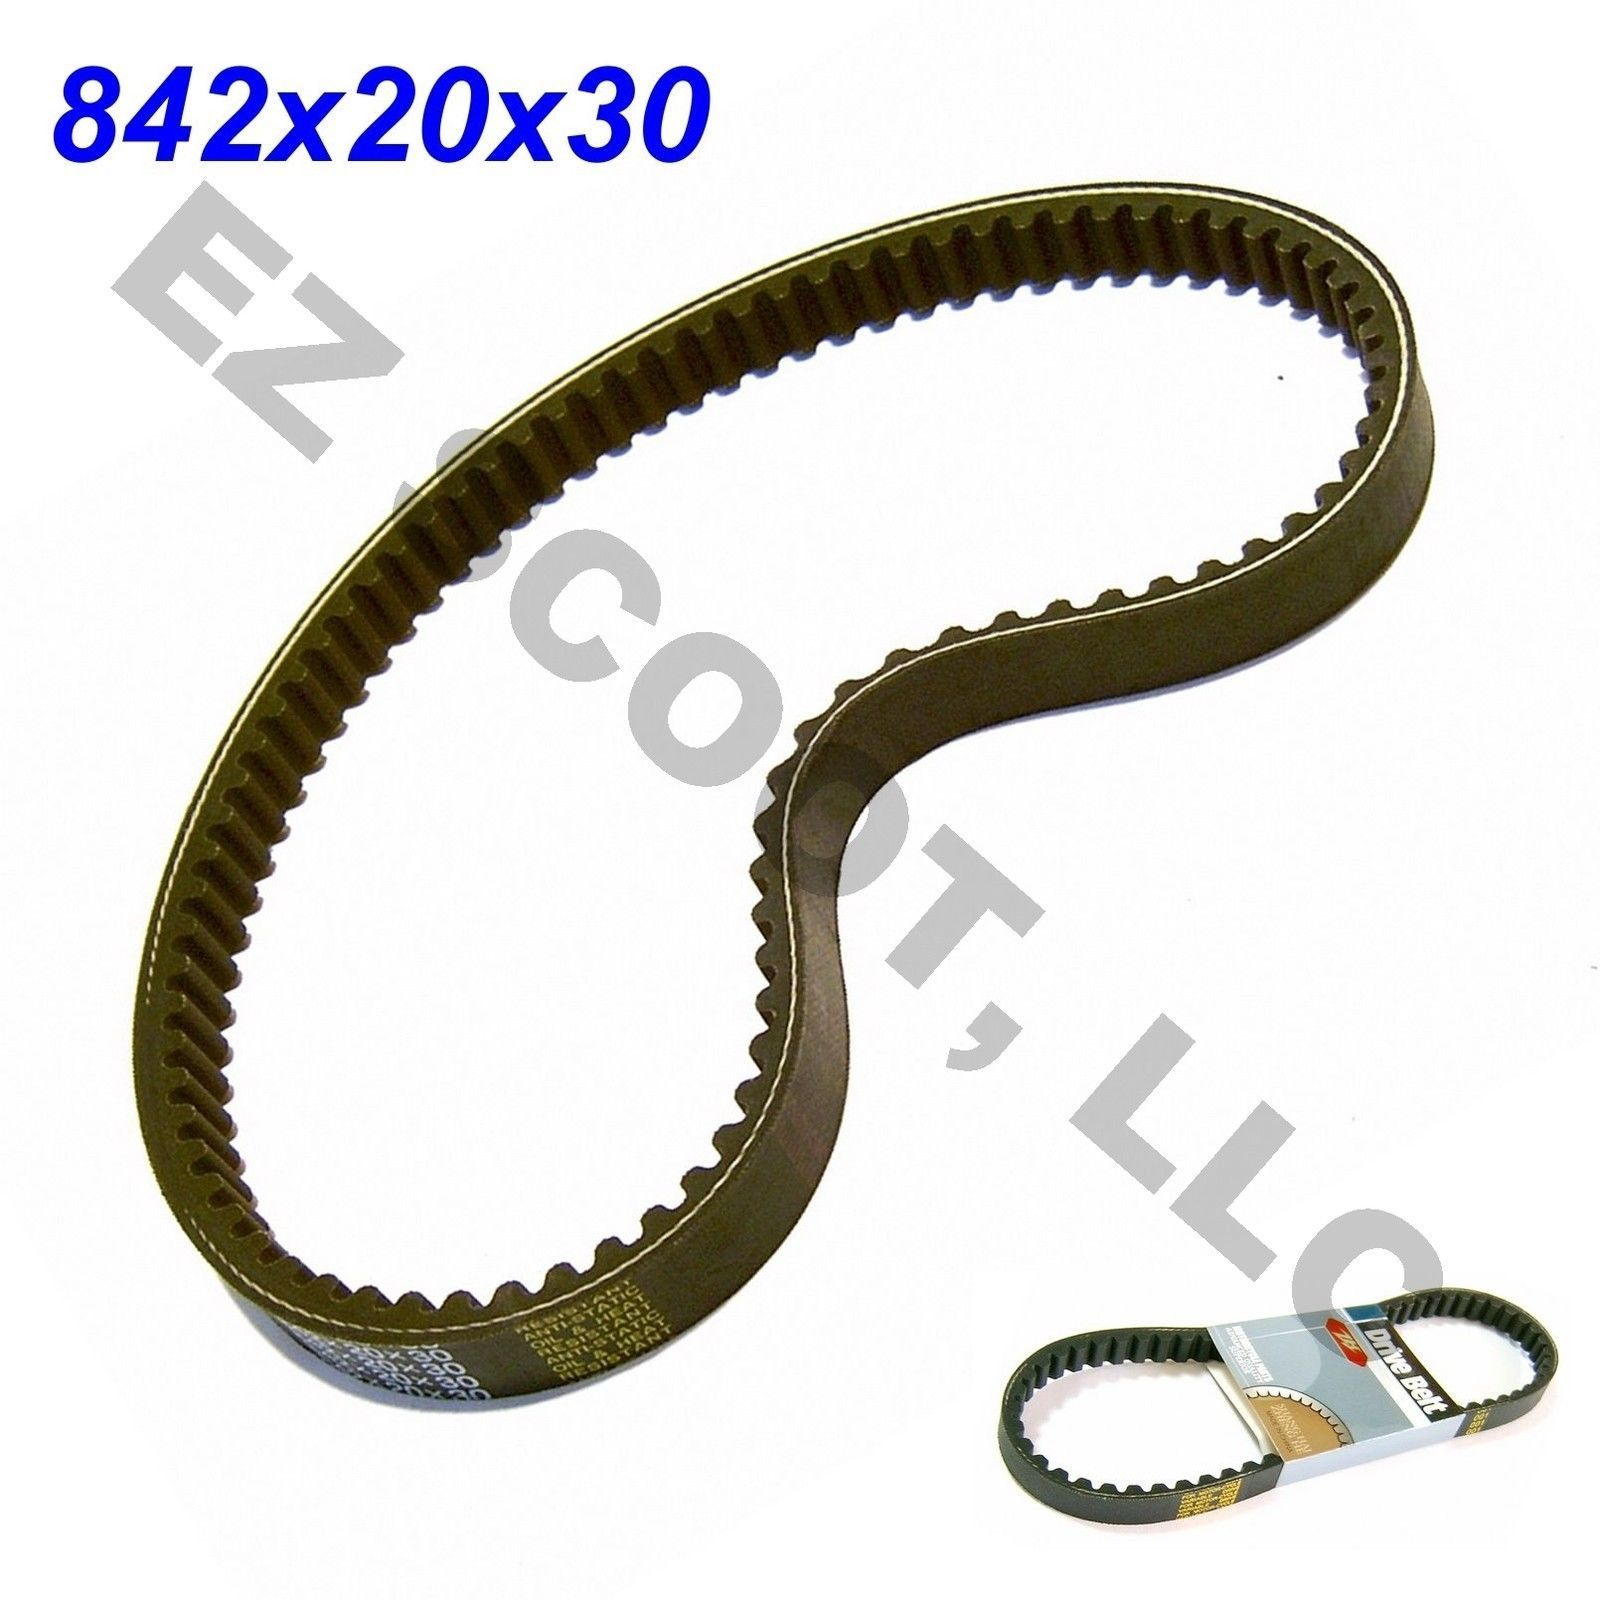 Drive Belt 842 20 30 Gy6 4 Stroke Scooter 125 150cc Jonway Kazuma Peace Vip Bms Car Repair Service Motorcycle Design Car And Motorcycle Design